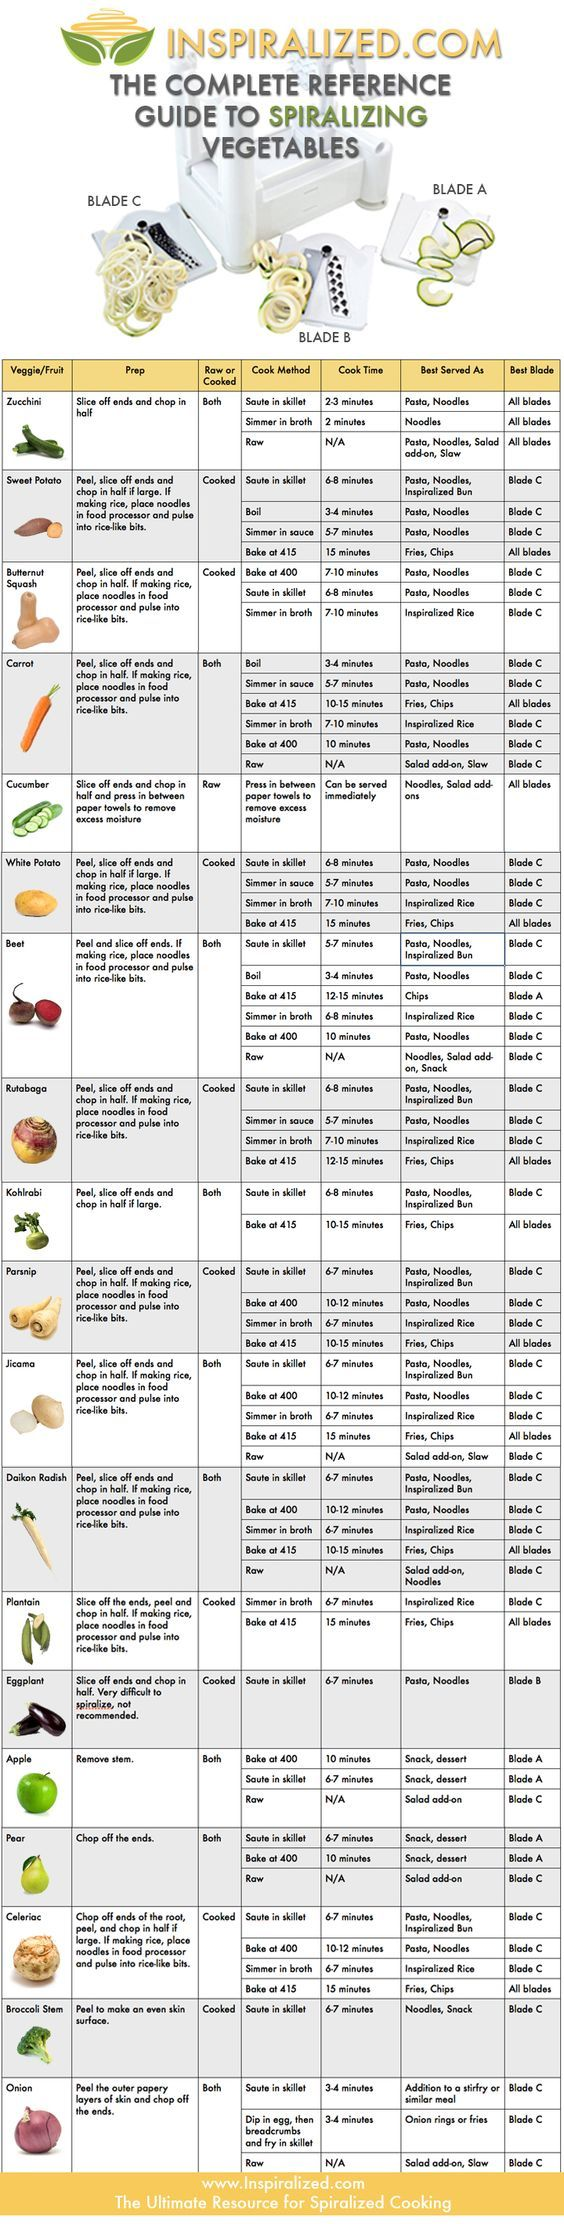 The Complete Reference Guide to Spiralizing Vegetables - http://www.inspiralized.com/wp-content/uploads/2014/01/SpiralizedGuideFinal.jpg: